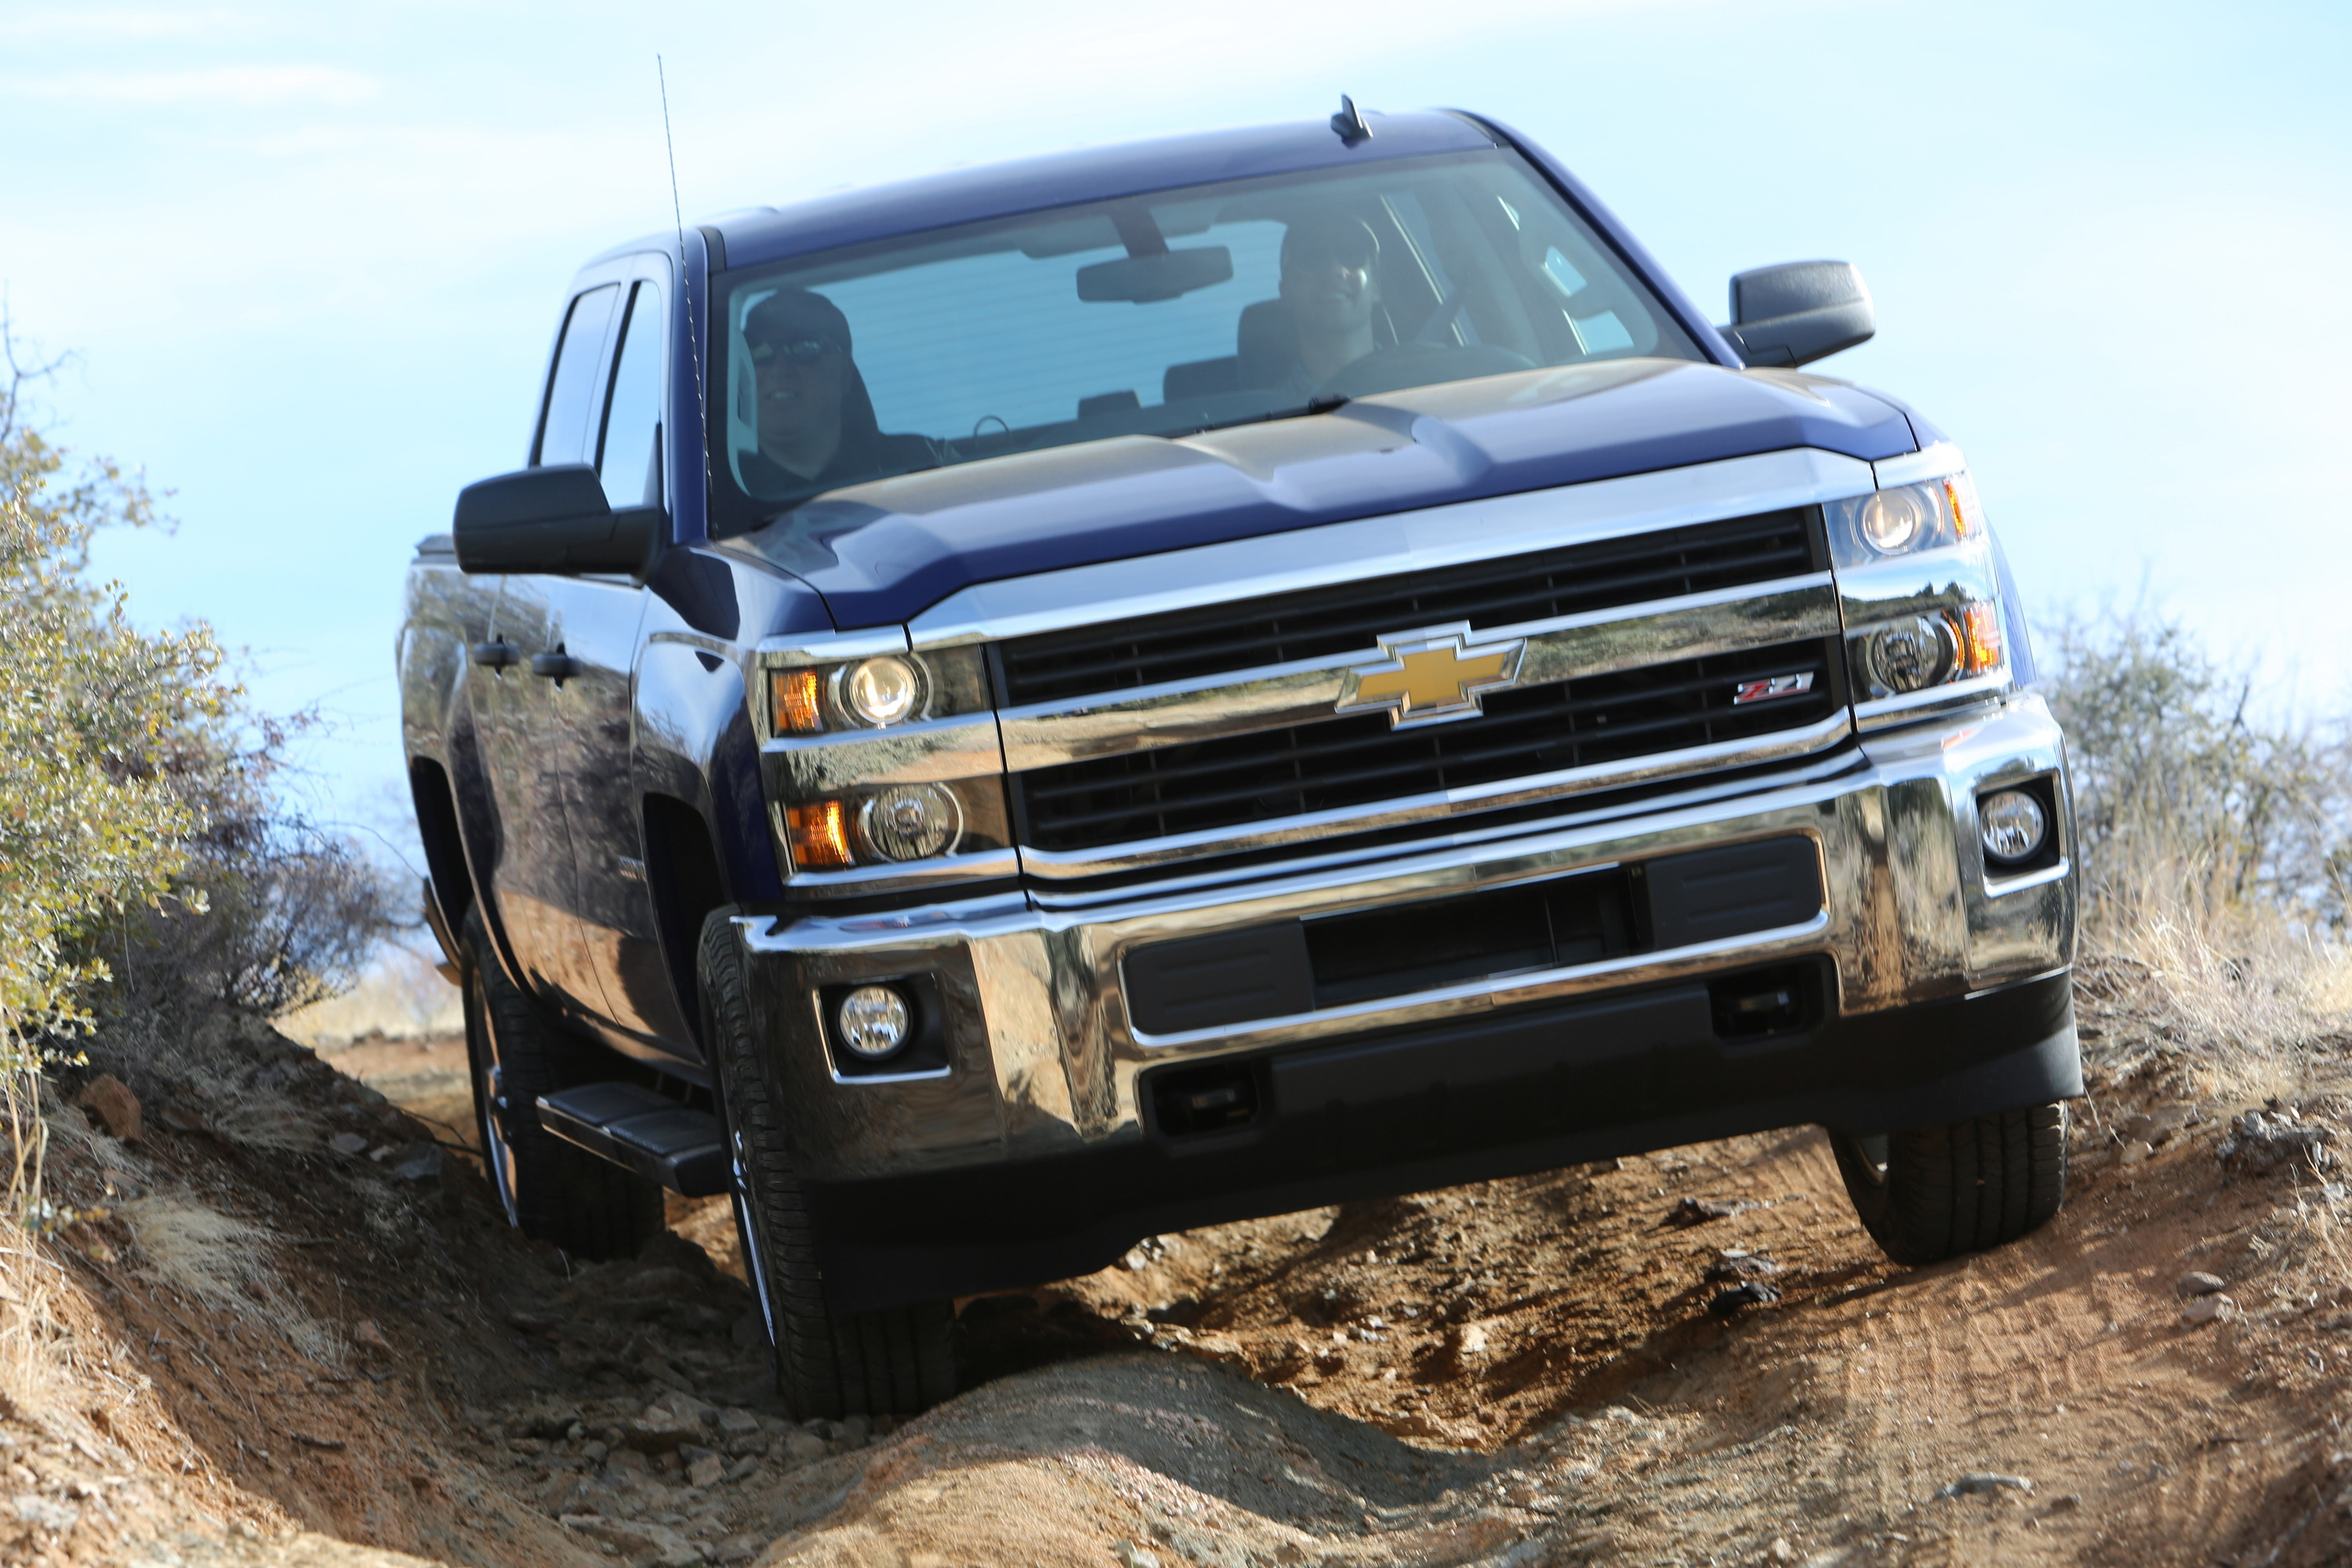 Chevy drops teaser of silverado 4500 and 5500 prior to march debut chevy drops teaser of silverado 4500 and 5500 prior to march debut news top speed sciox Gallery